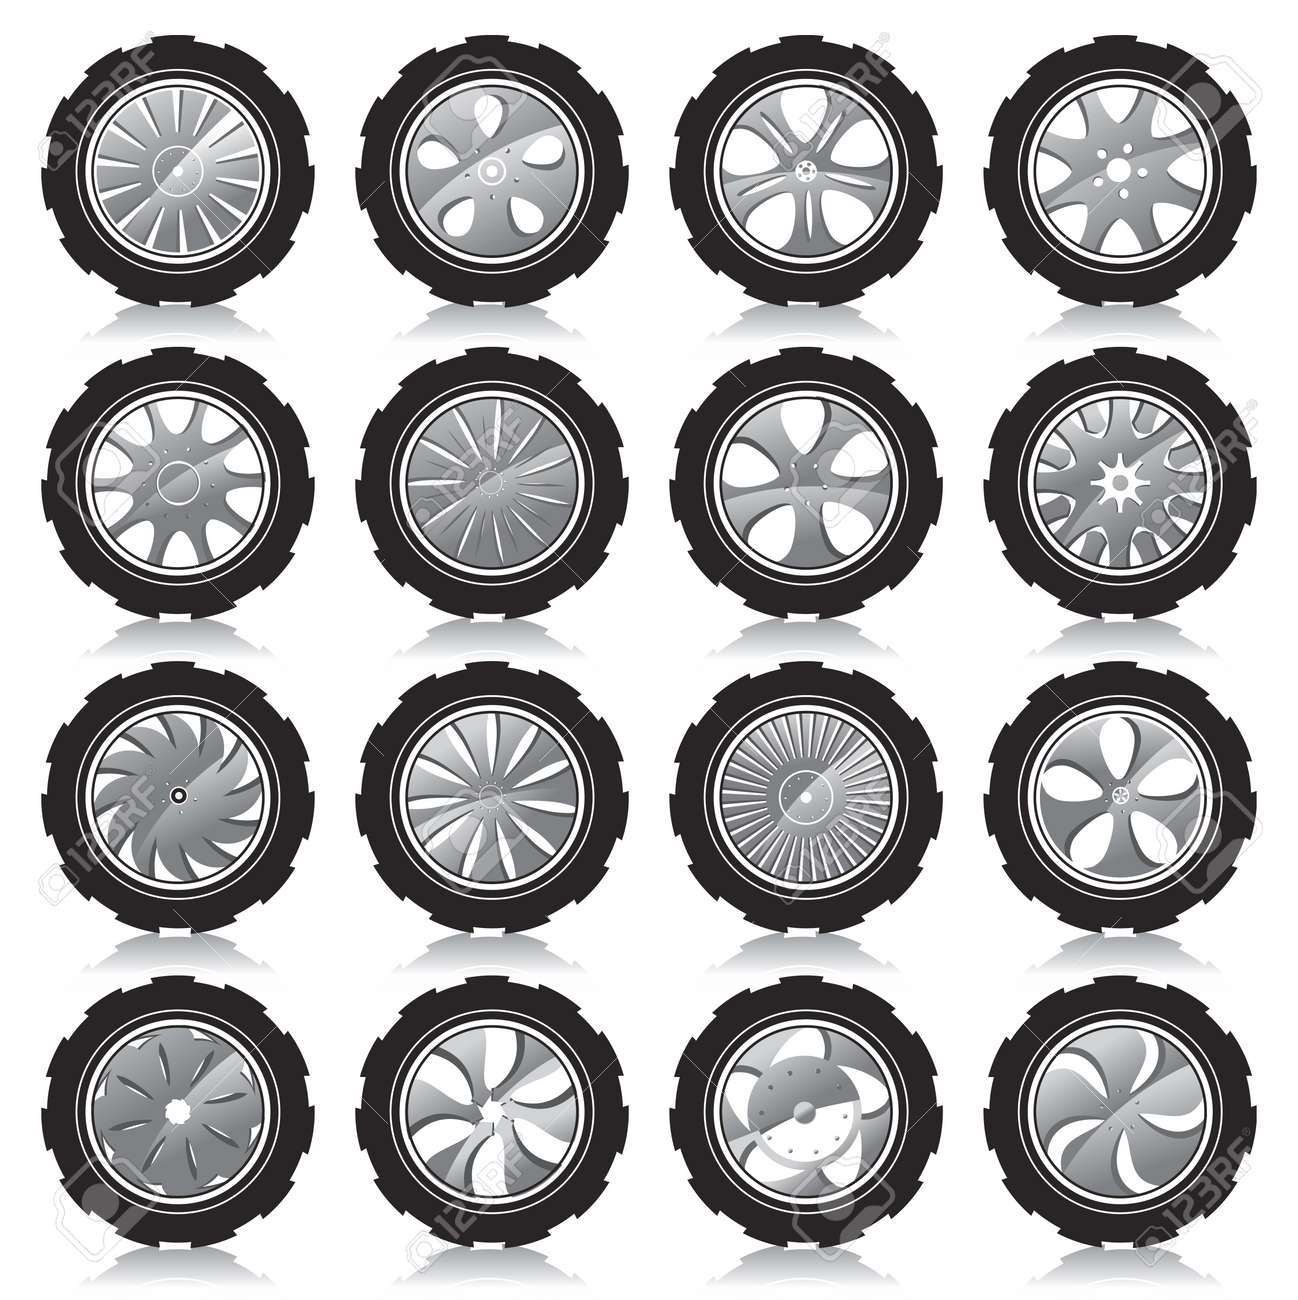 automotive wheel with alloy wheels and crude rubber tires Stock Vector - 12741615